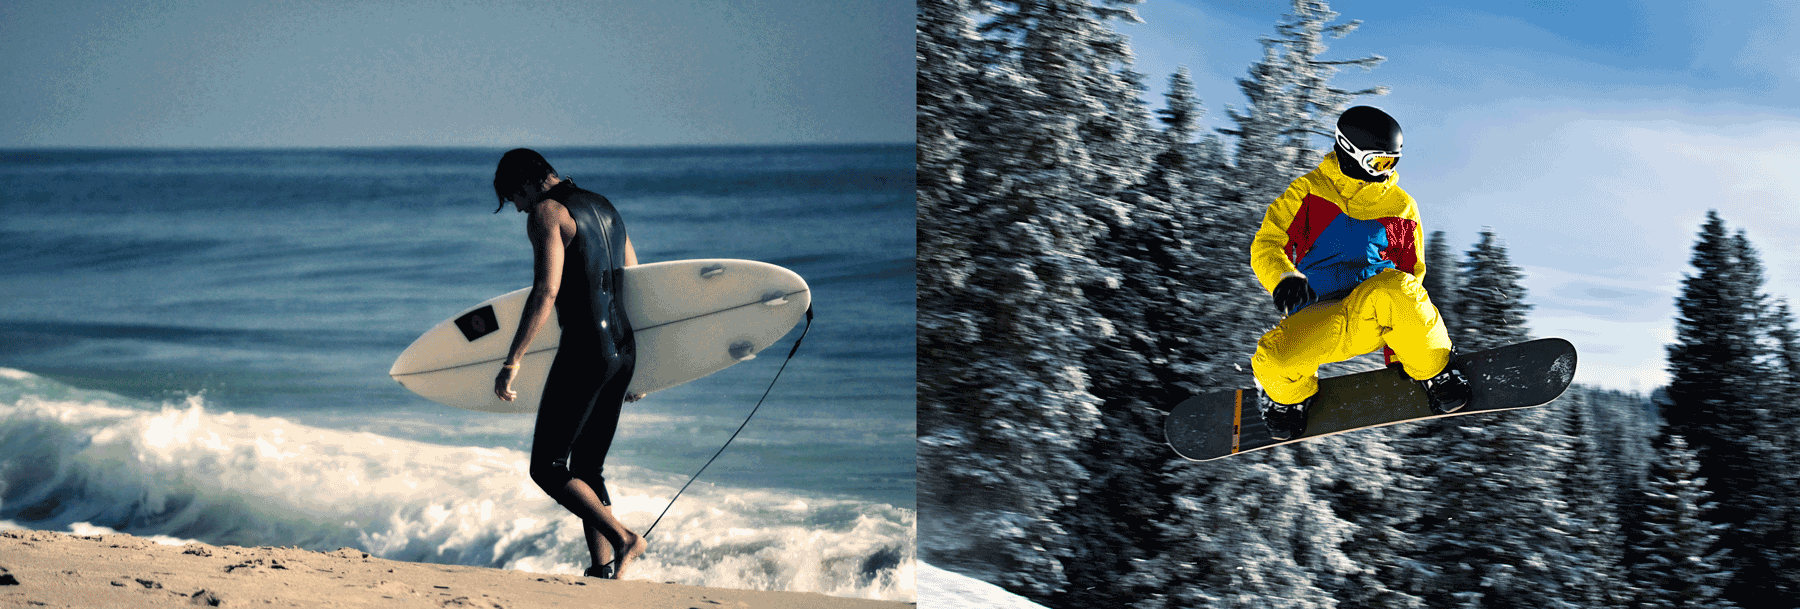 surfers and snowboarders